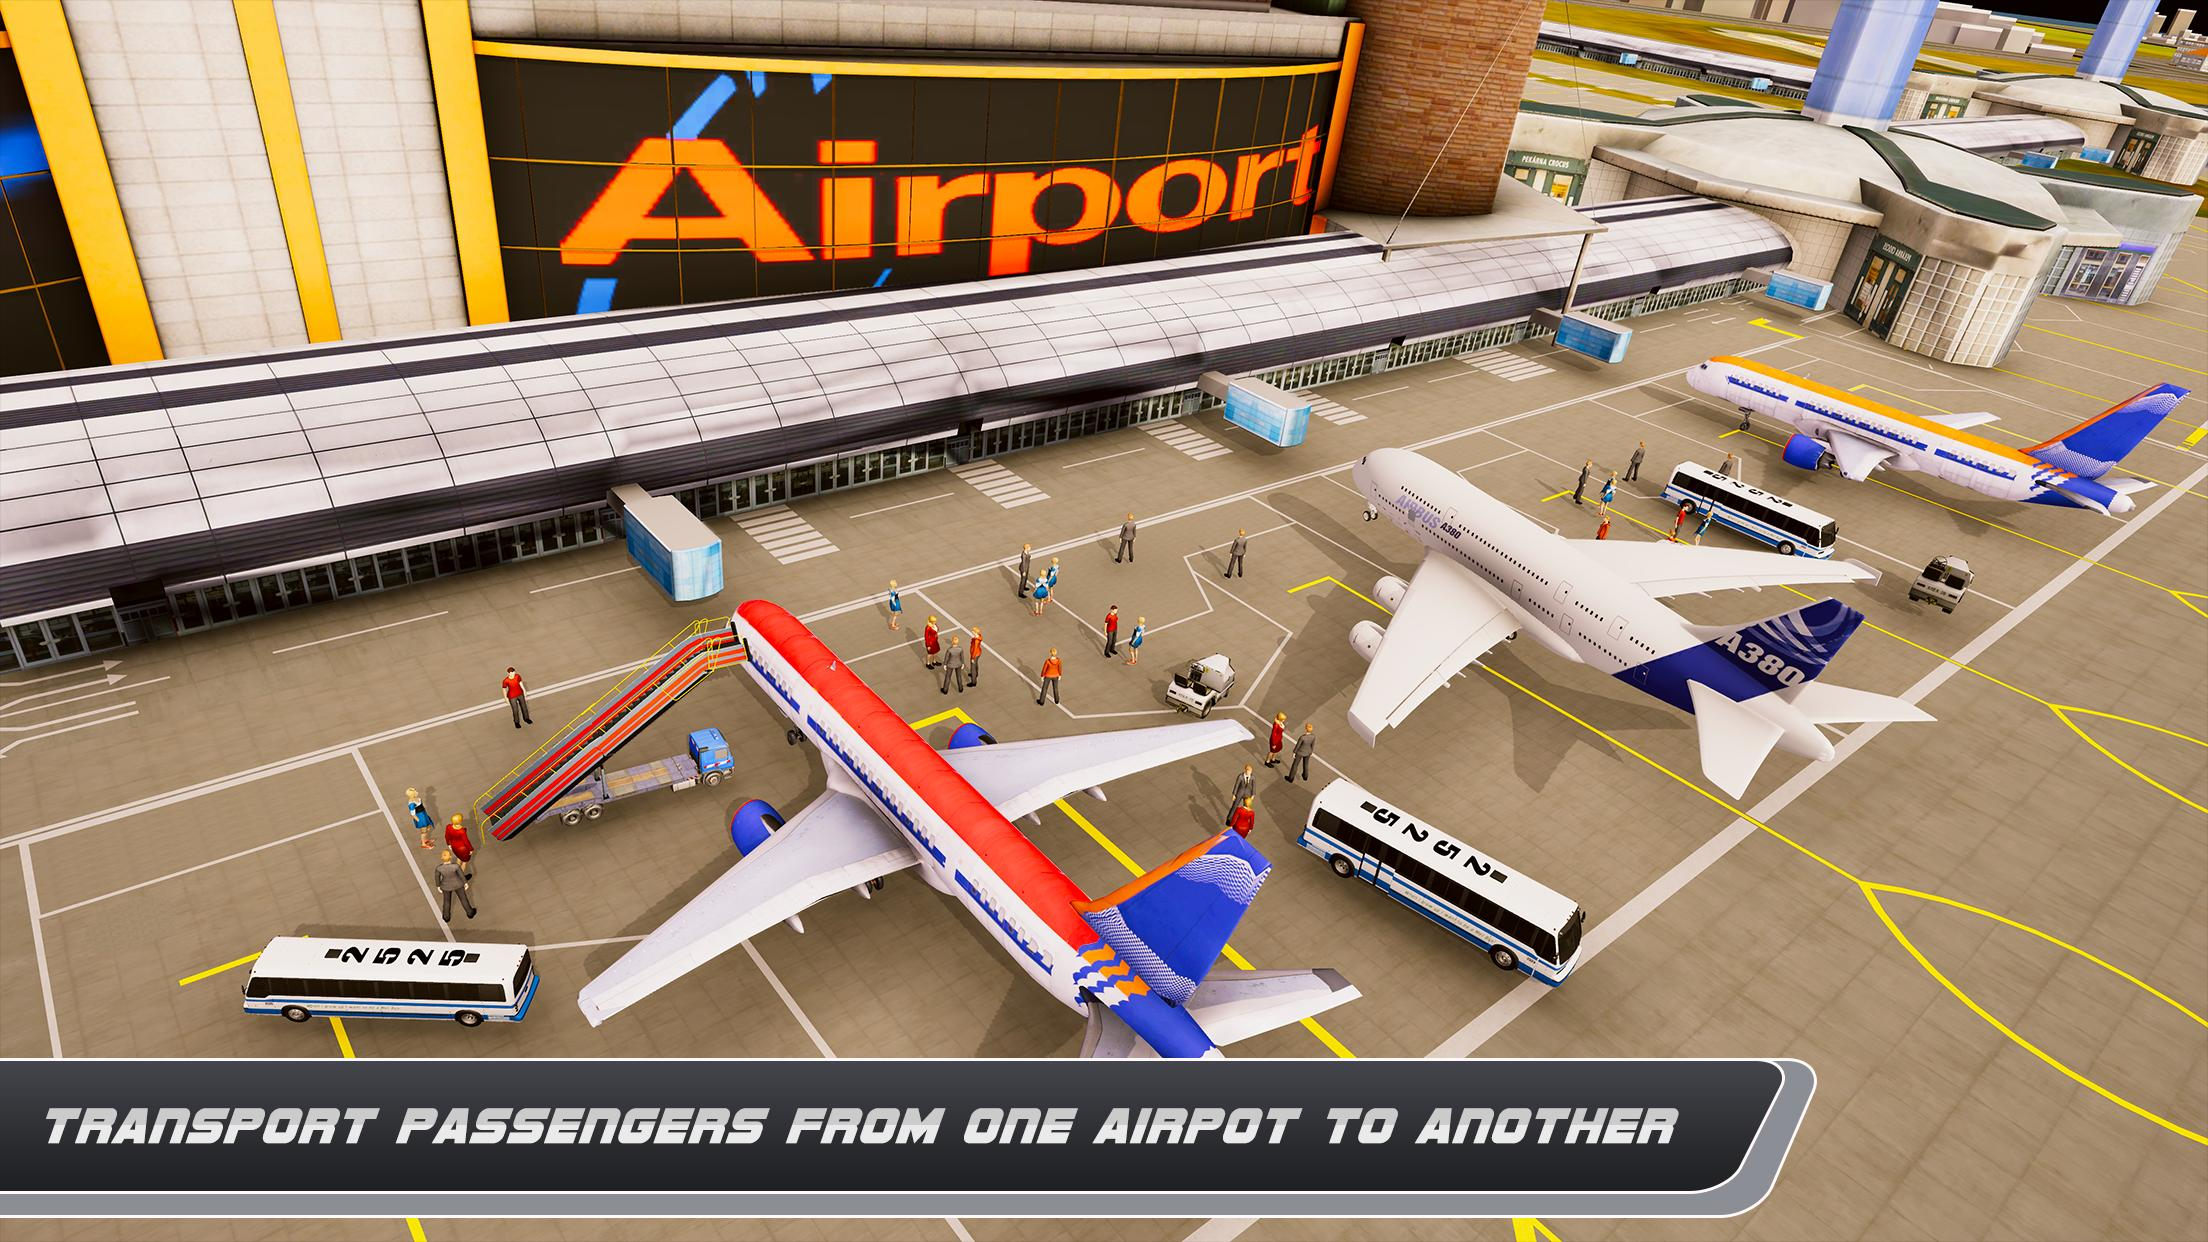 Airplane Real Flight Simulator 2020 Plane Games 5.4 Screenshot 8